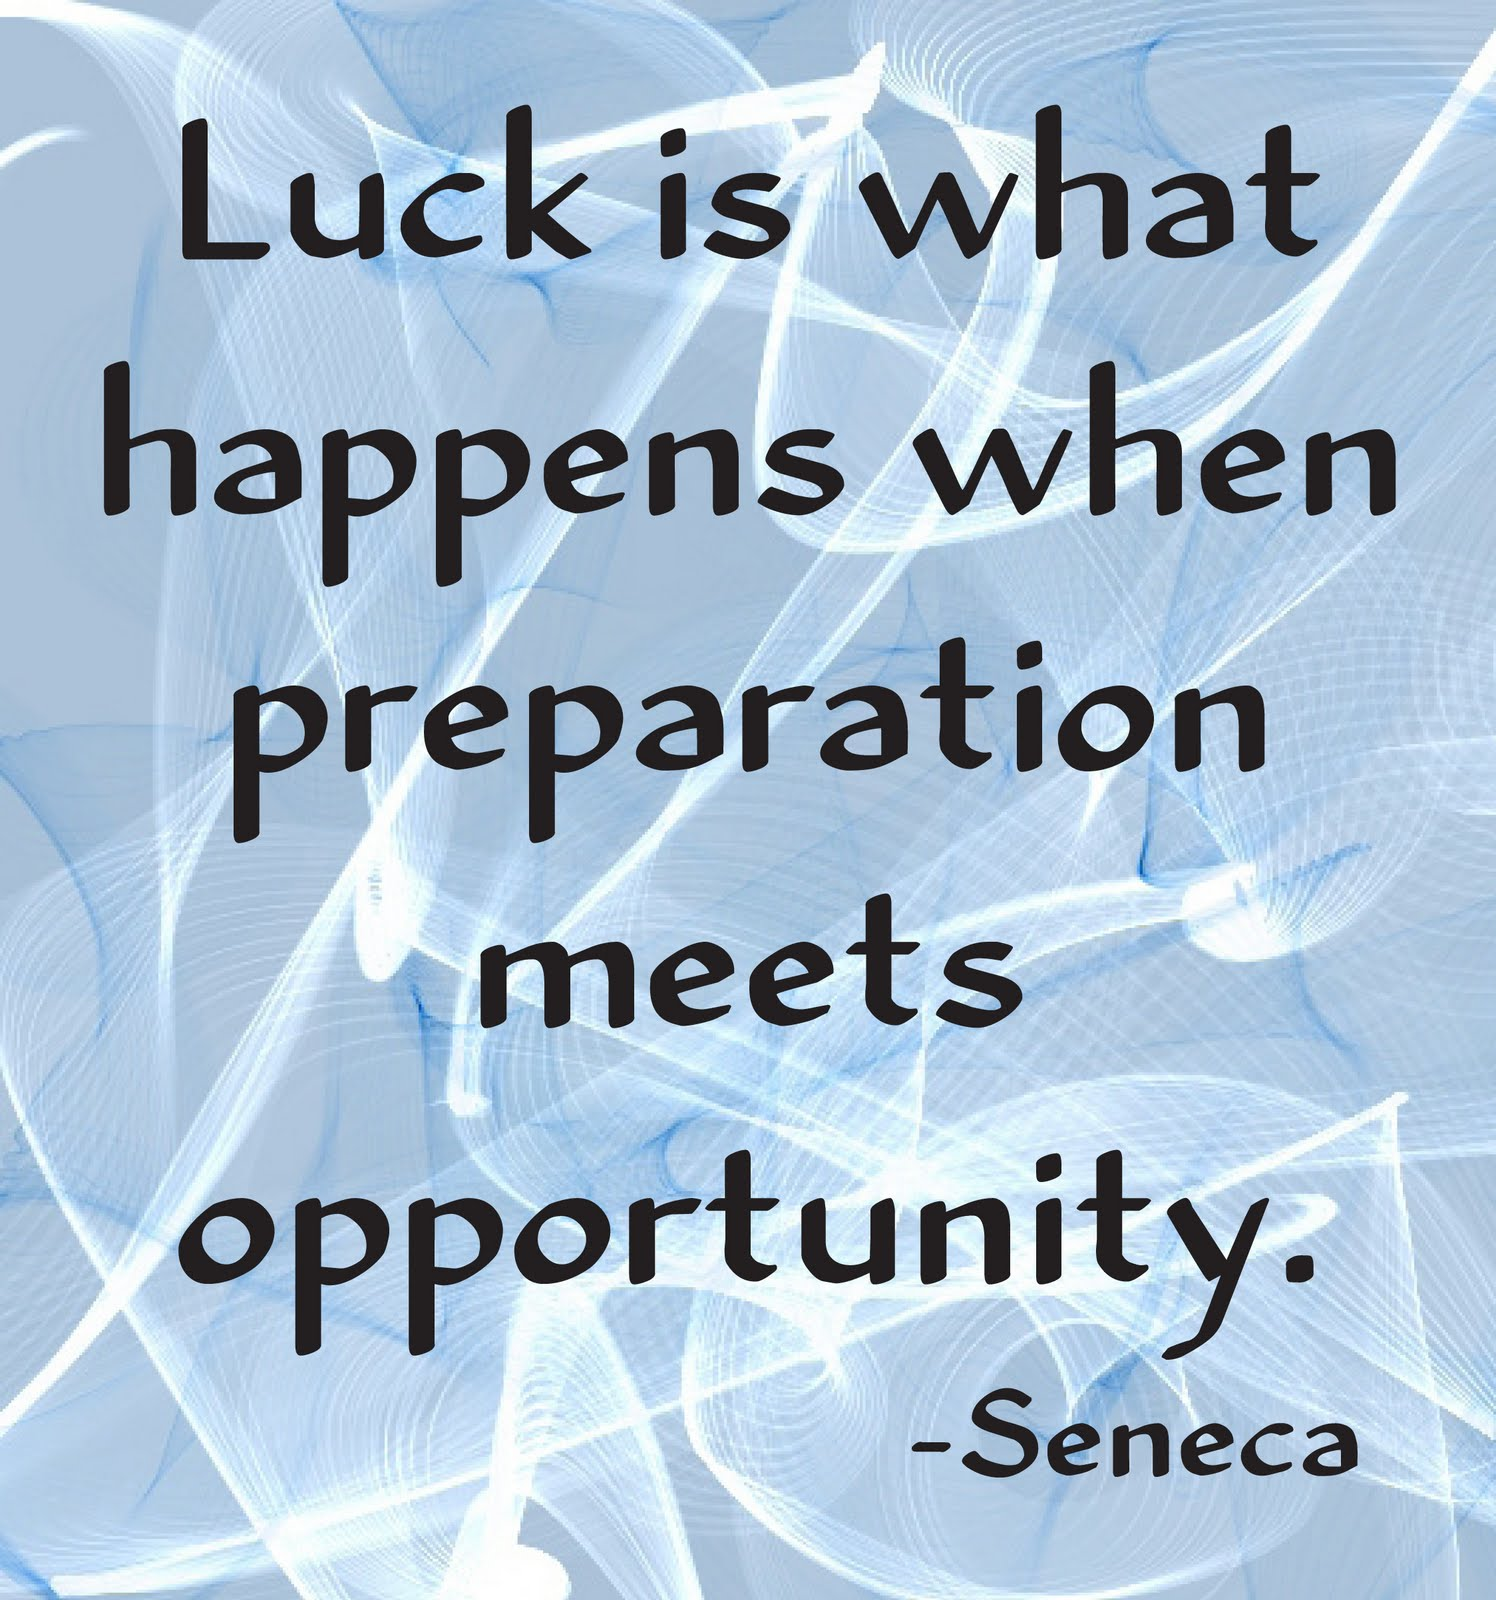 Opportunity Is What Happens When Luck Meets Preparation